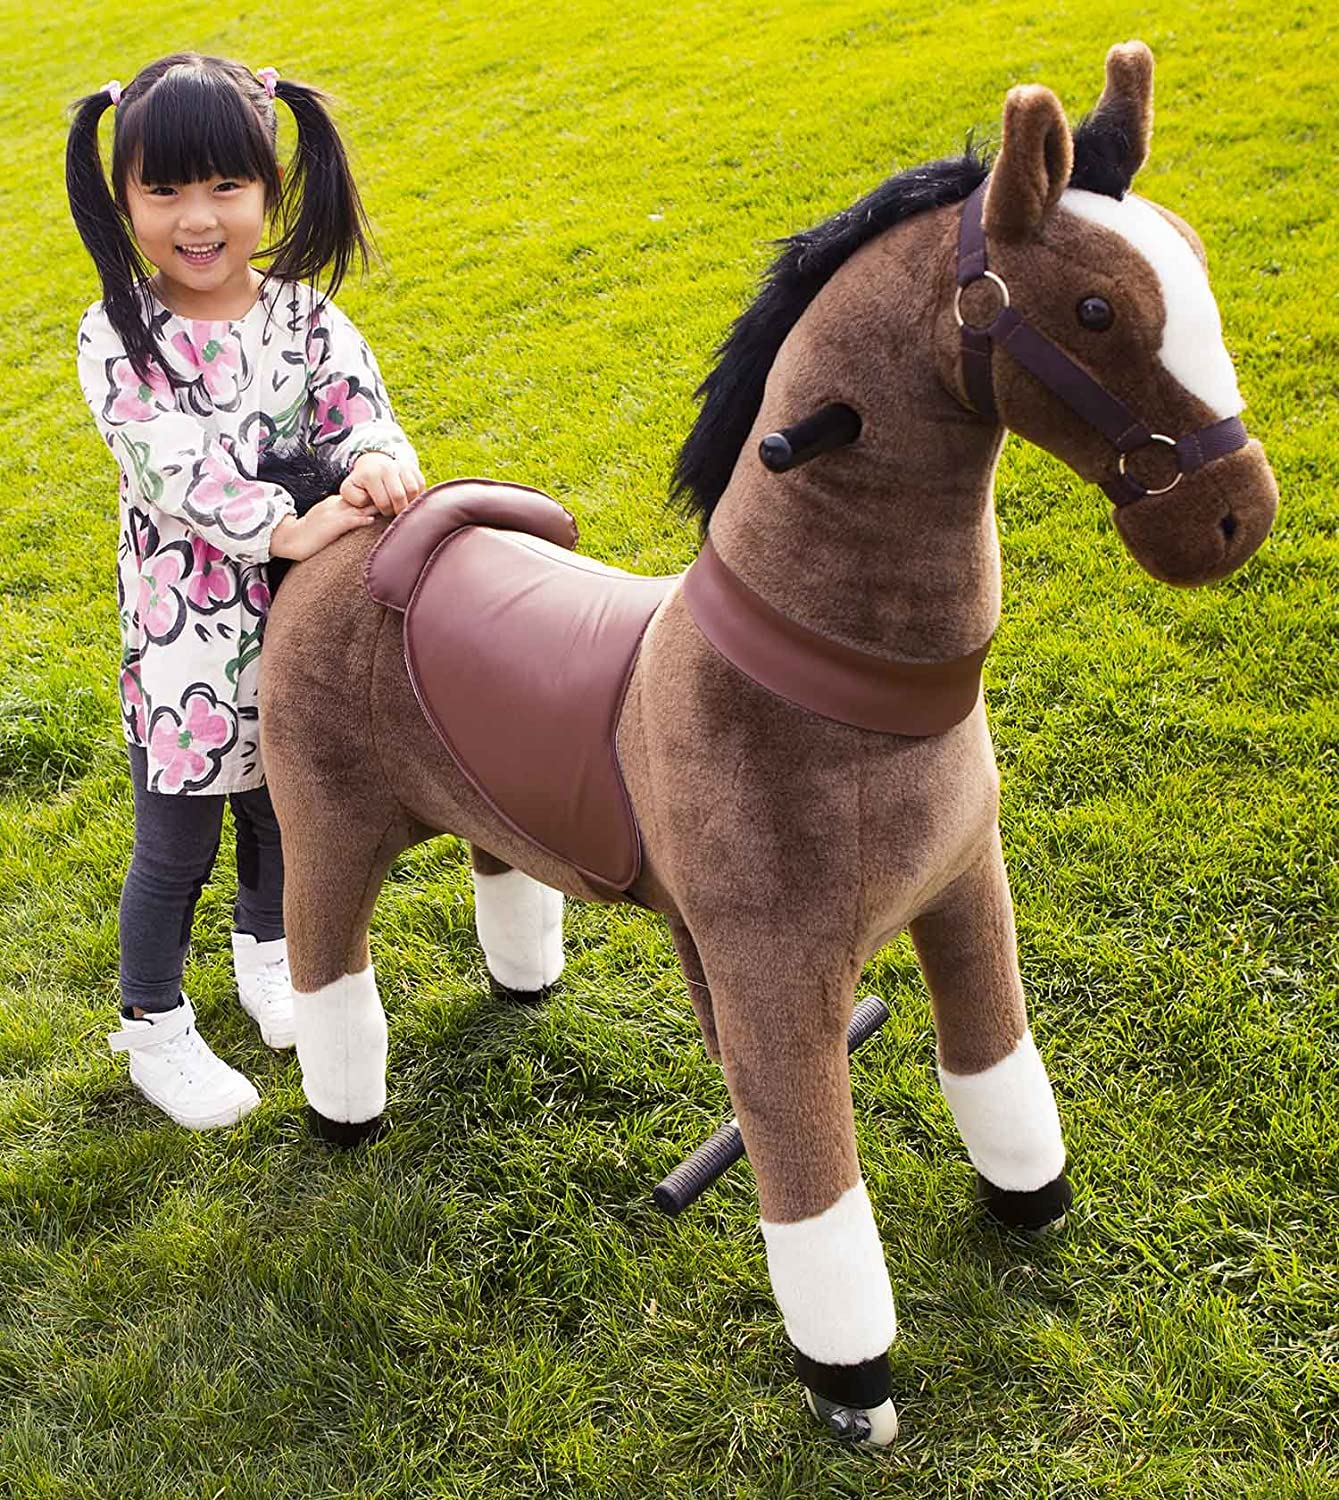 Mechanical Ride on Pony Simulated Horse Riding on toy ride-on Ponyサイクルwithoutバッテリーまたは電源:より快適Riding with Gallopモーションキッズ5 – 12歳   B071R3GTPS